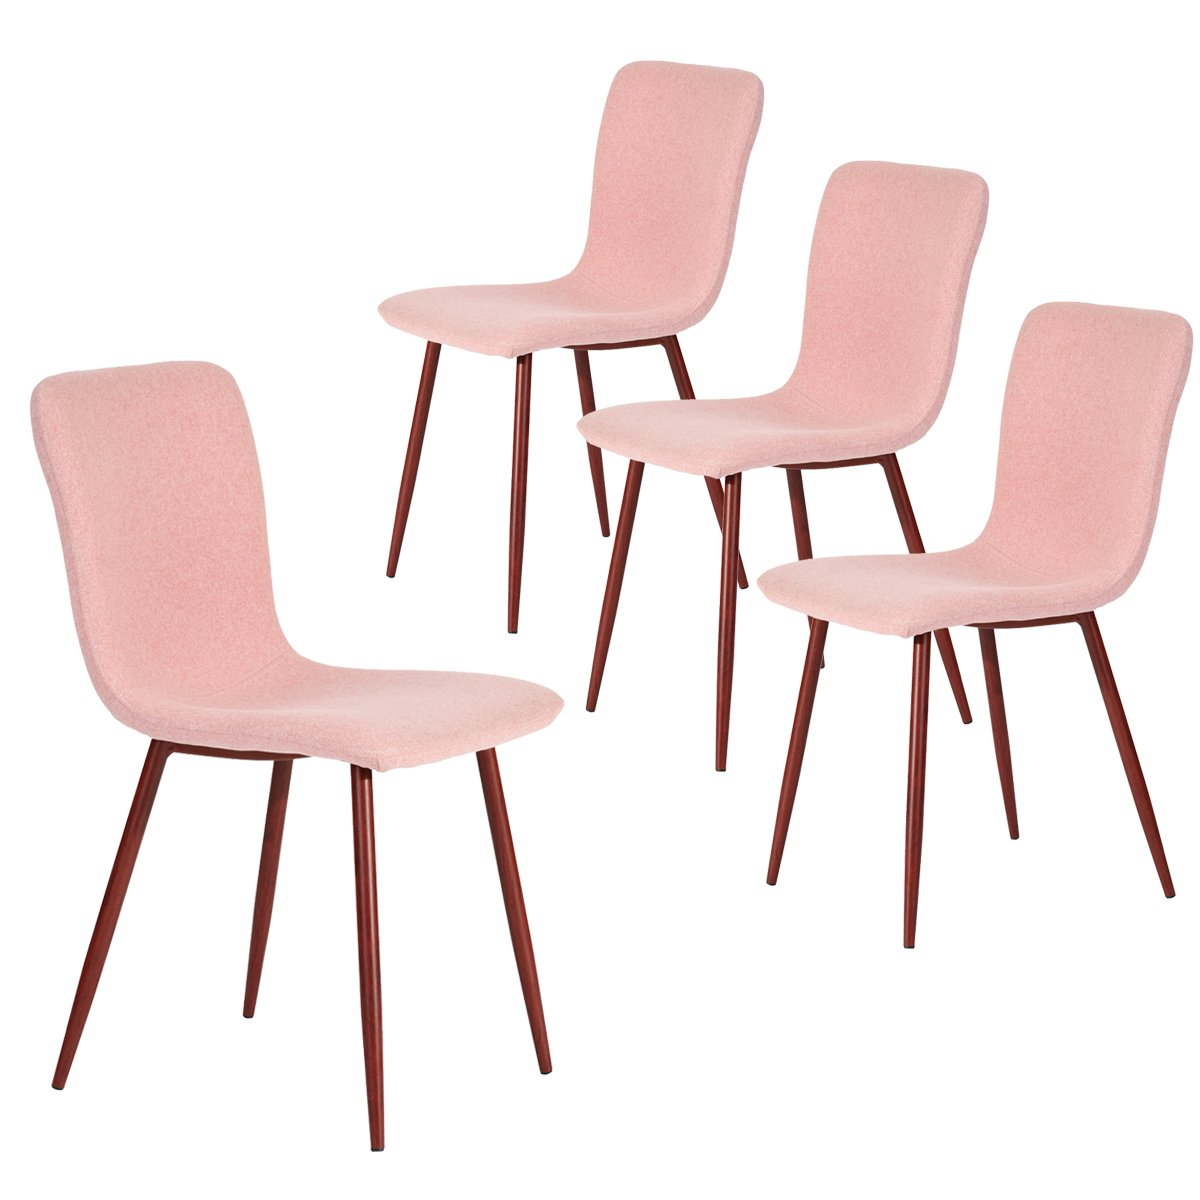 Coavas Set of 4 Dining Side Chairs Fabric Cushion Kitchen Chairs with Sturdy Metal Legs for Dining Room, Pink SCAR-17 ... by Coavas